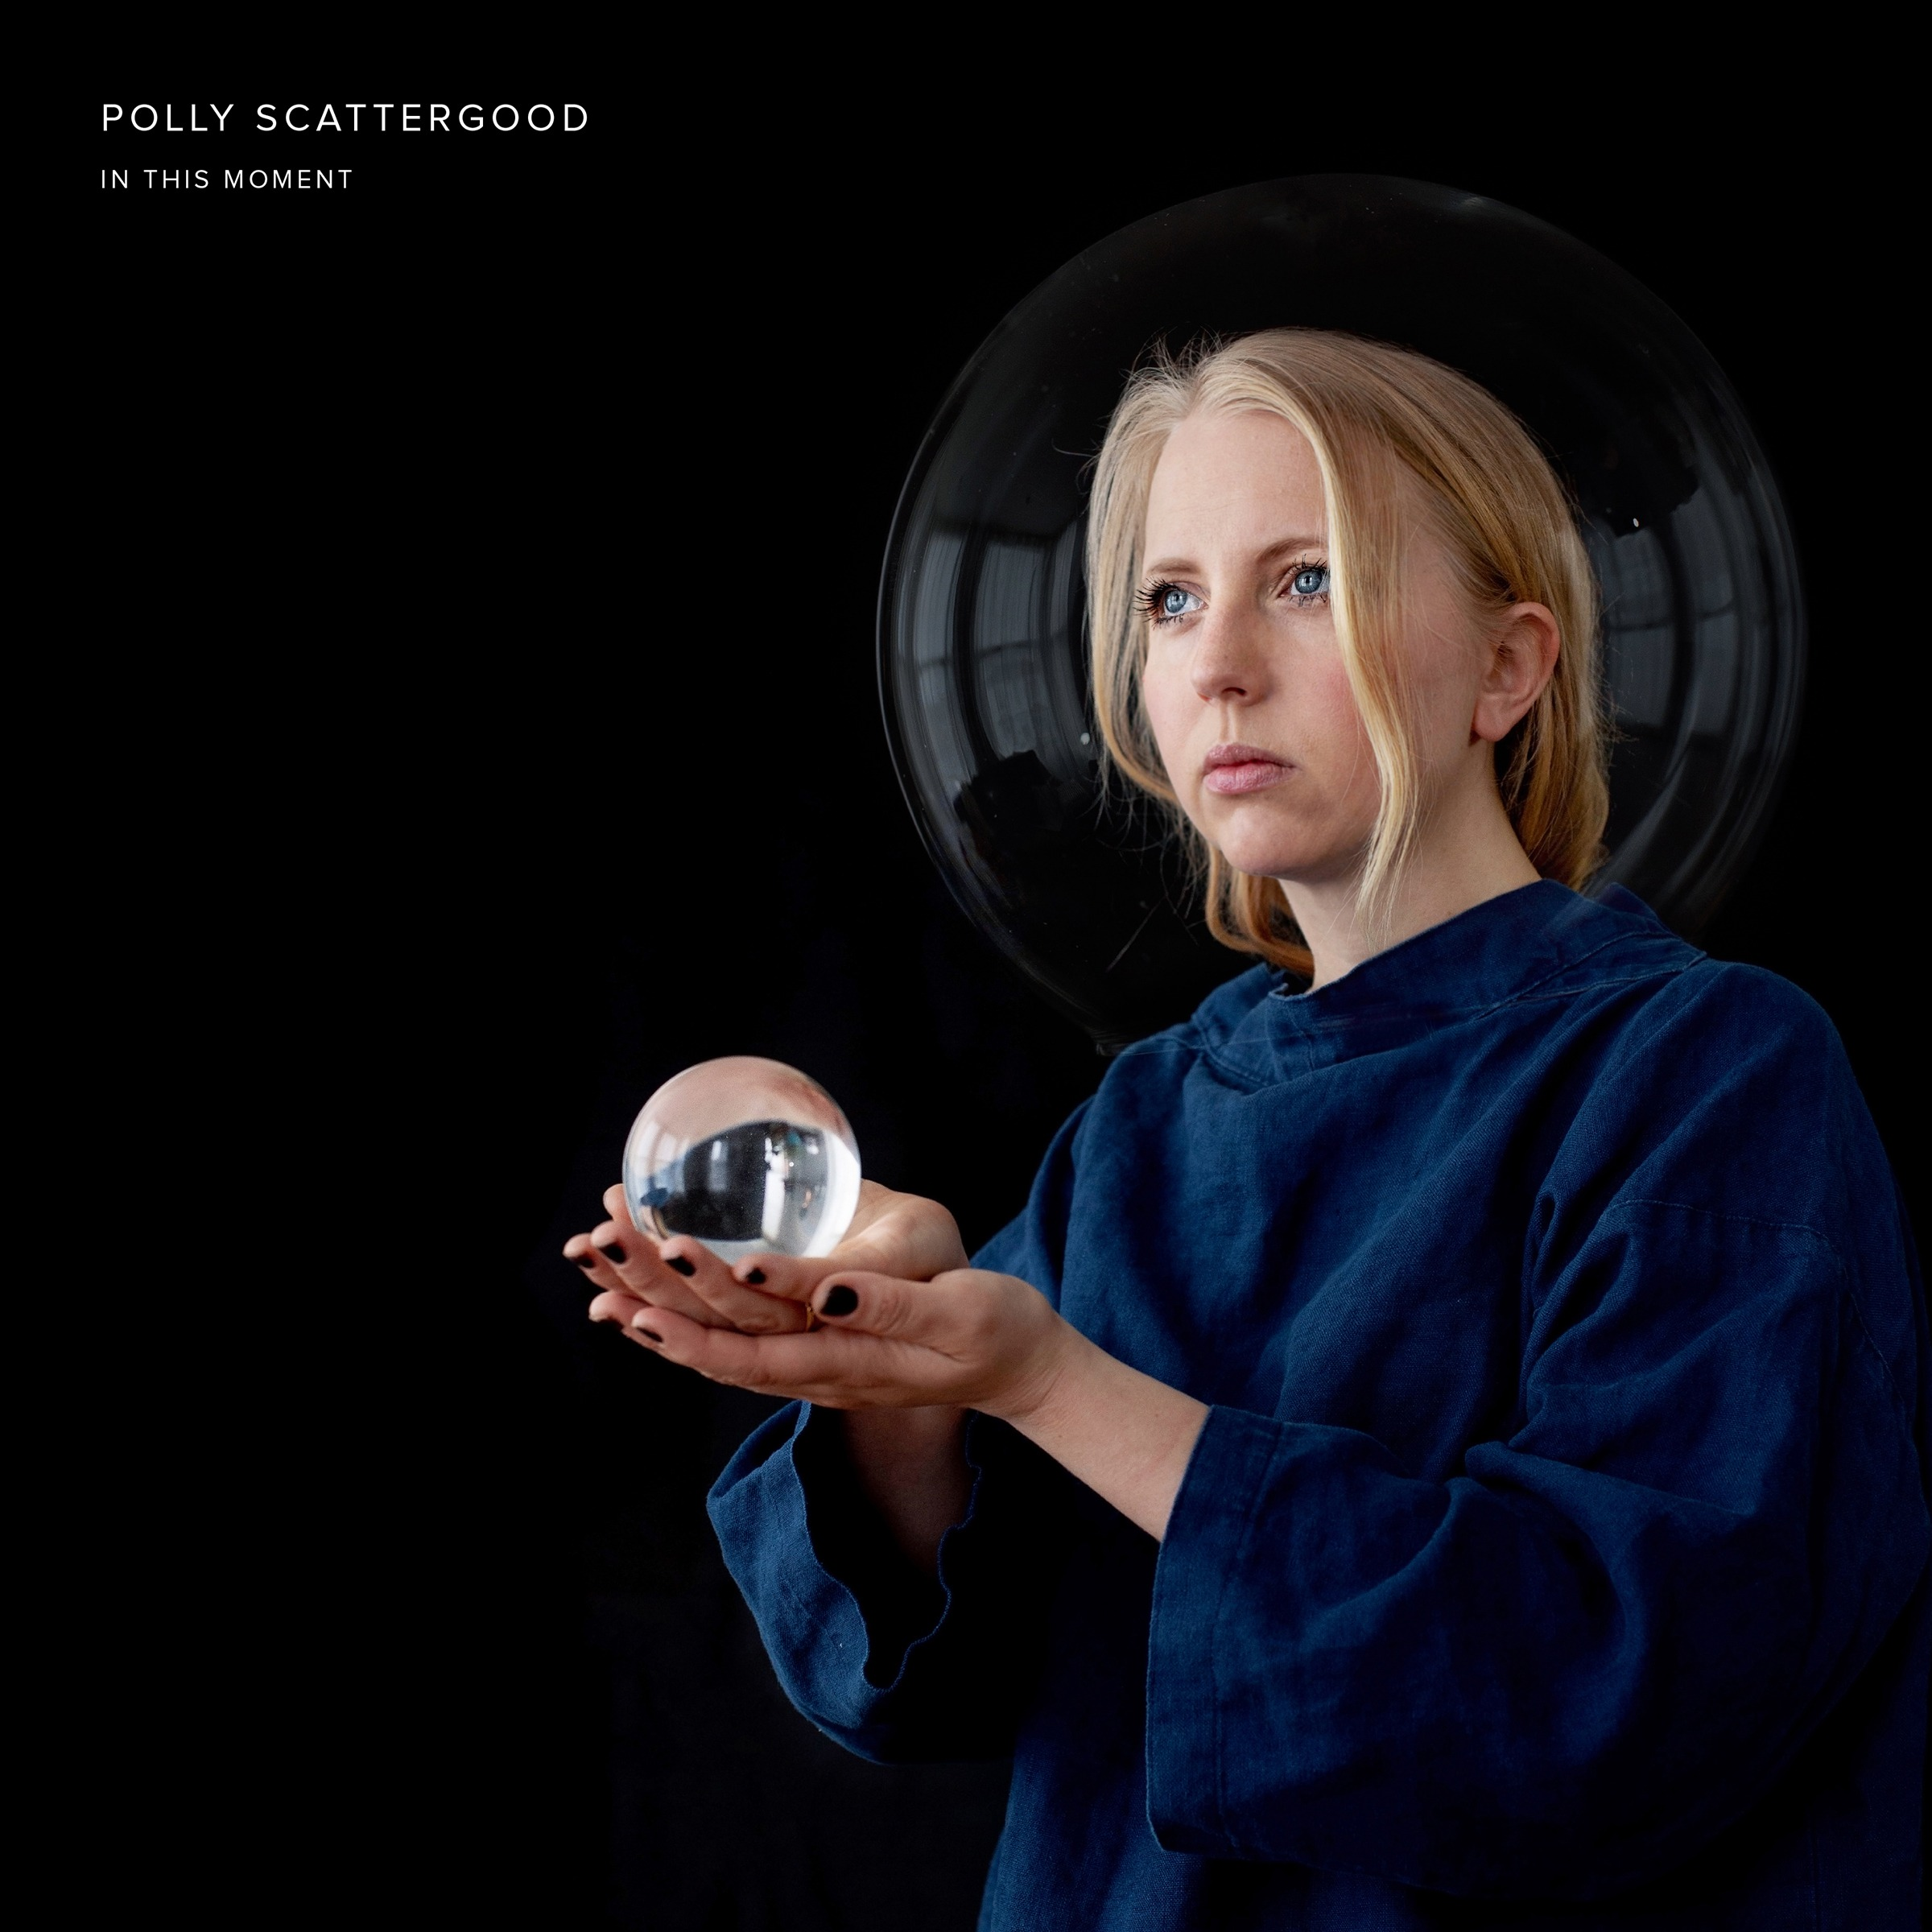 ALBUM REVIEW: Polly Scattergood - In This Moment